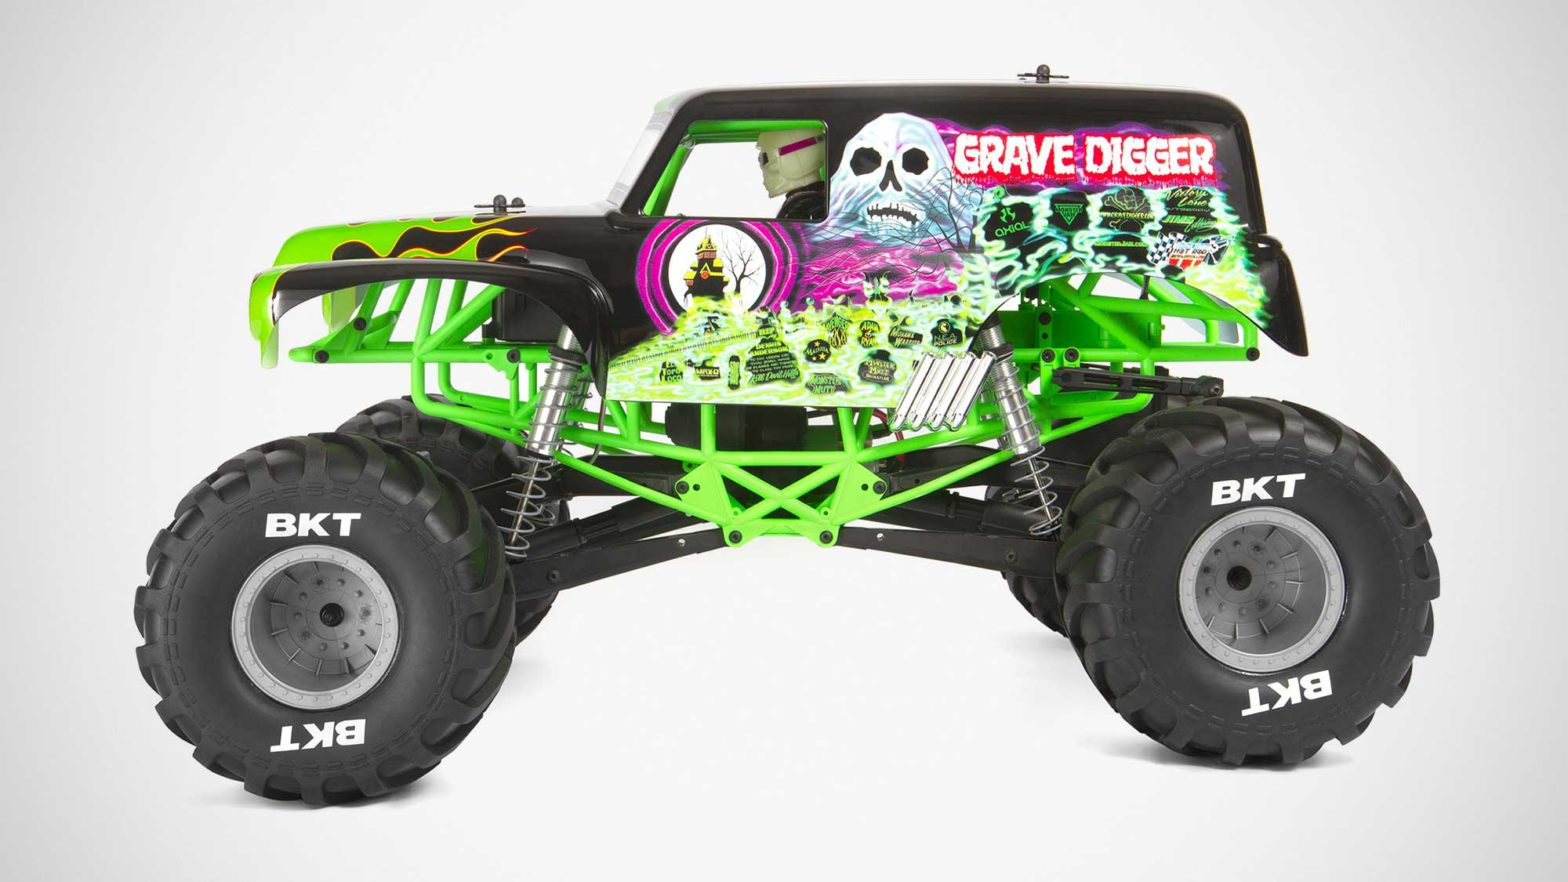 Axial Racing AXI03019 STM10 Grave Digger RC Truck